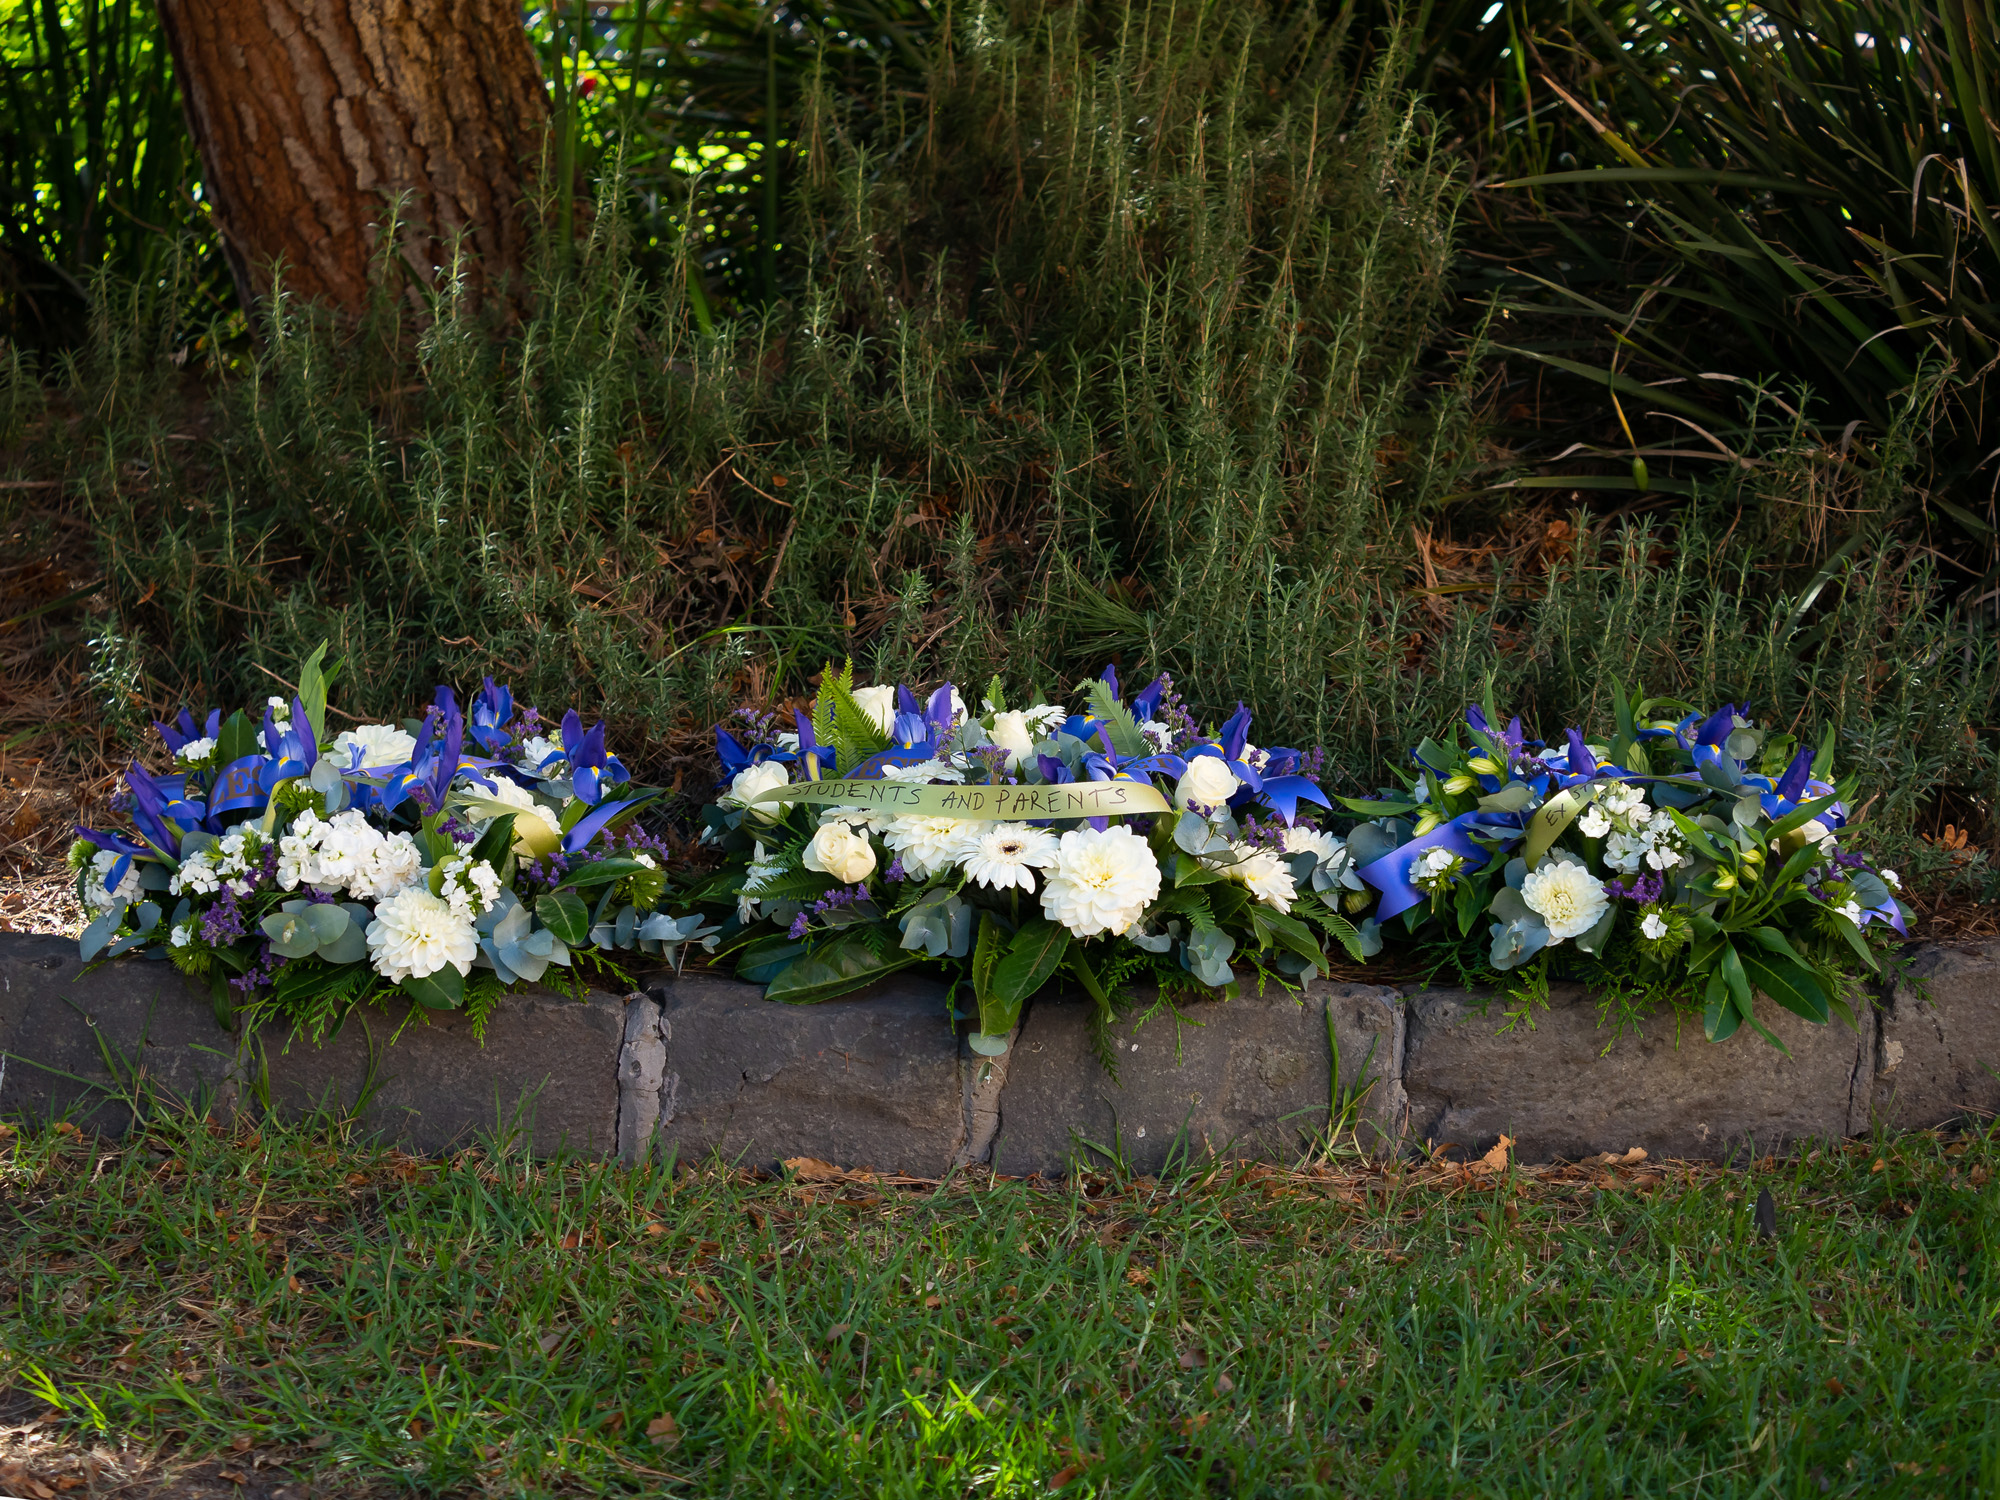 The three wreaths laid under the lone pine tree at Dandenong High School